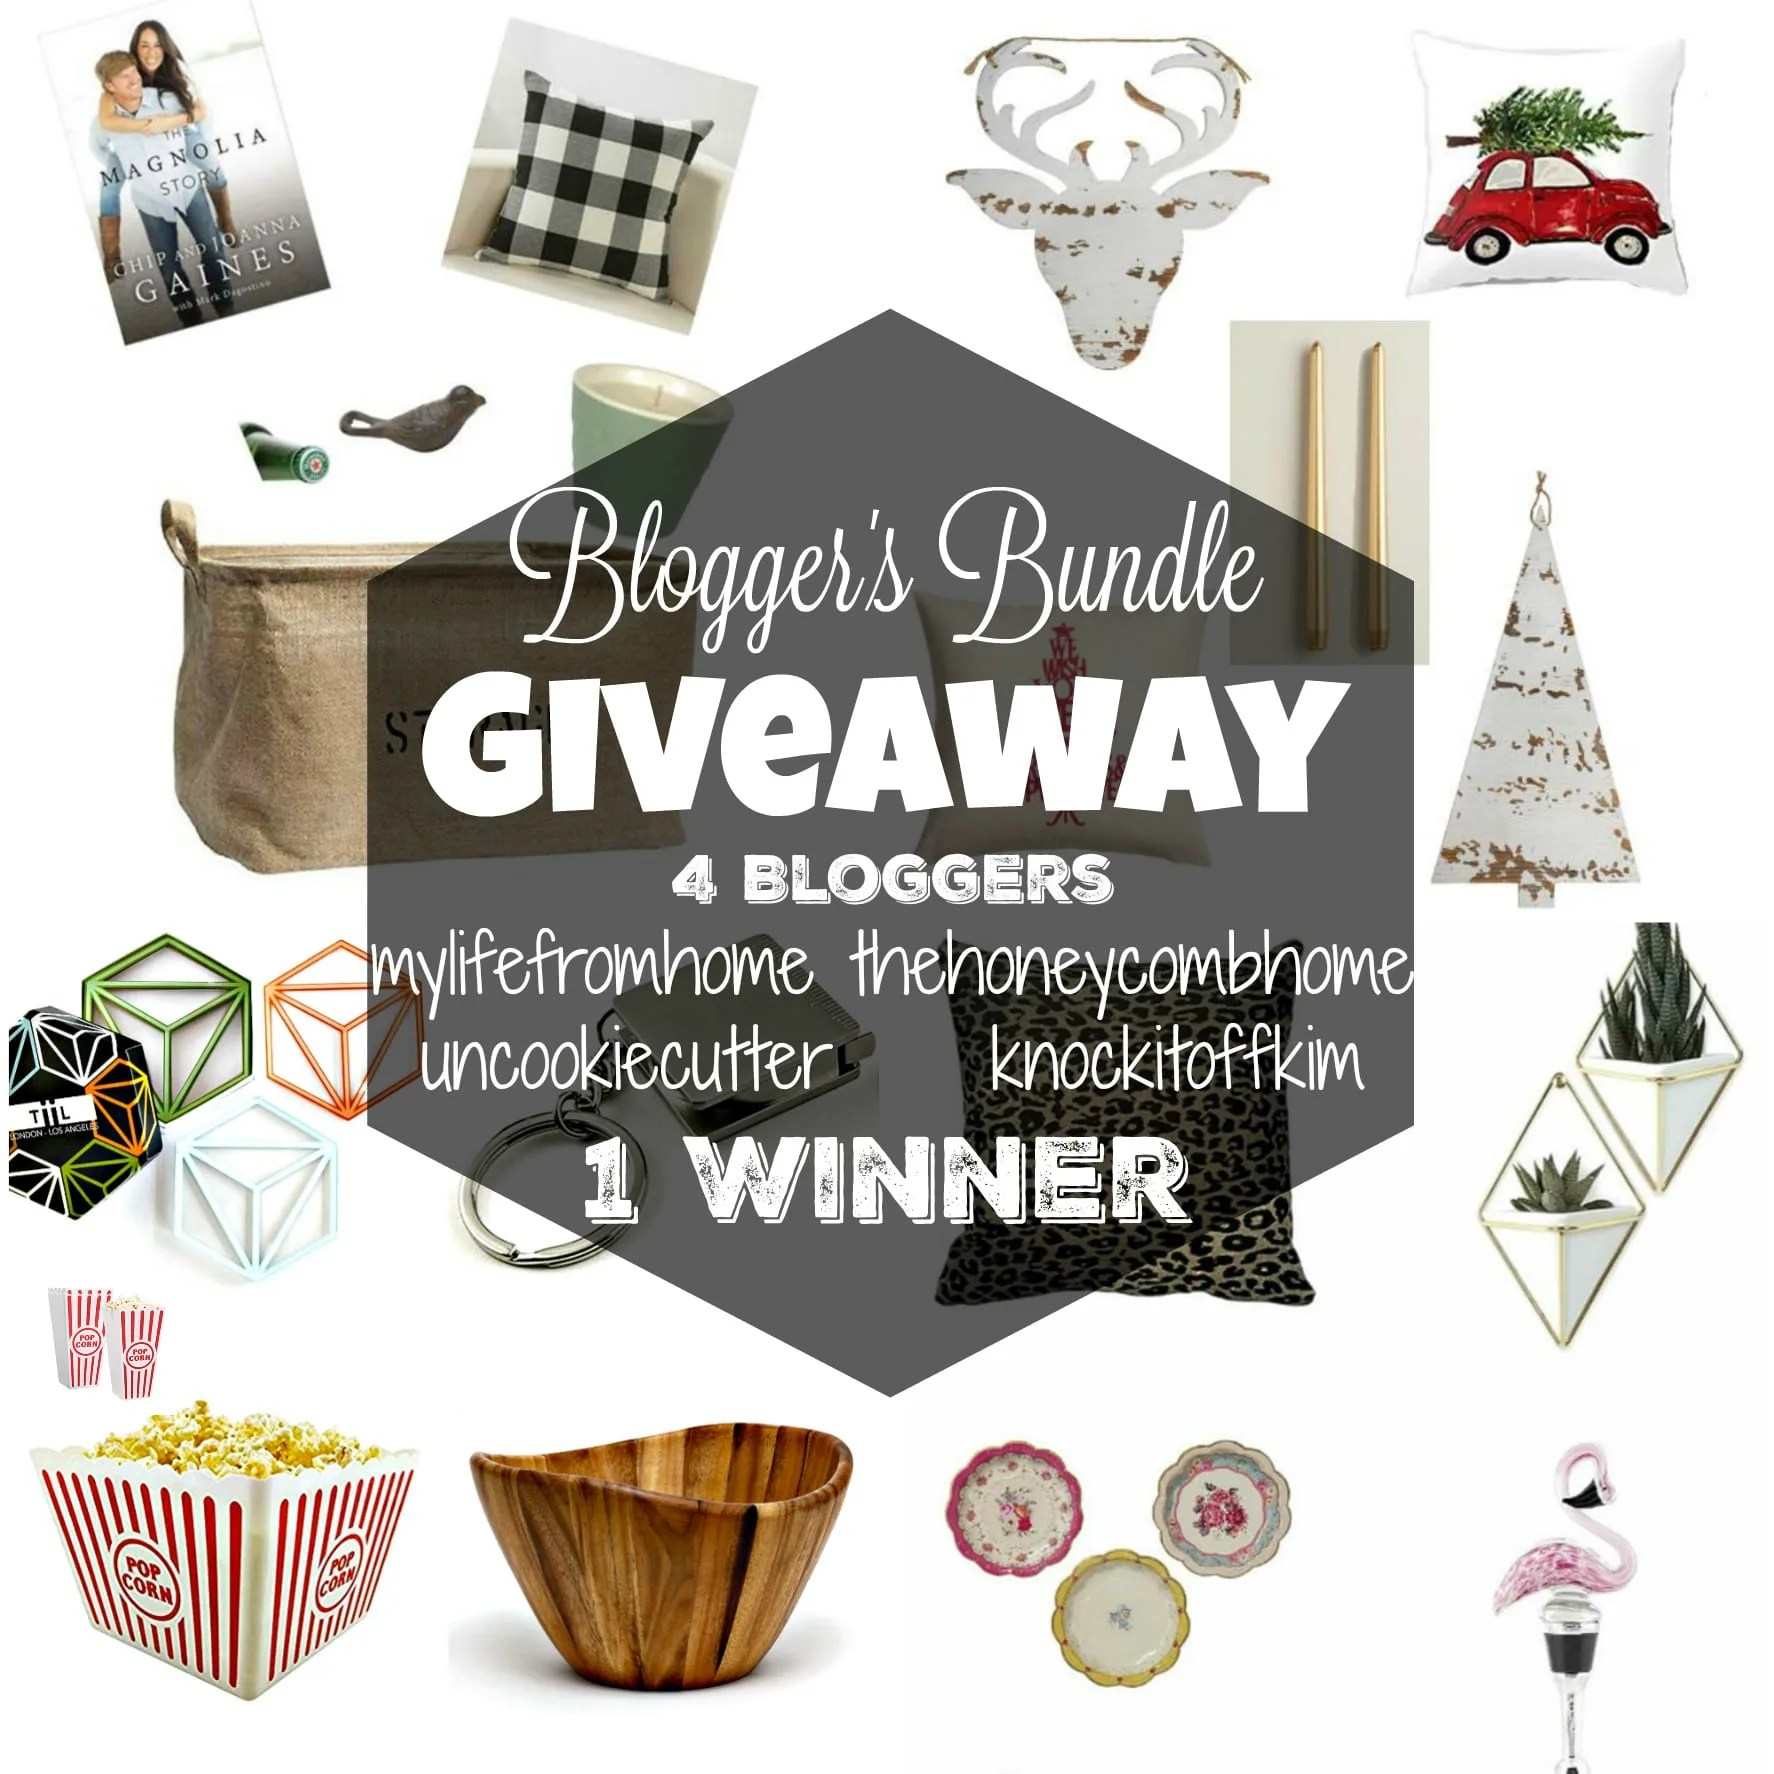 Blogger's Bundle Giveaway! 4 Bloggers are giving away their prize packs to 1 lucky winner! Visit UncookieCutter.com for all the details and to enter!